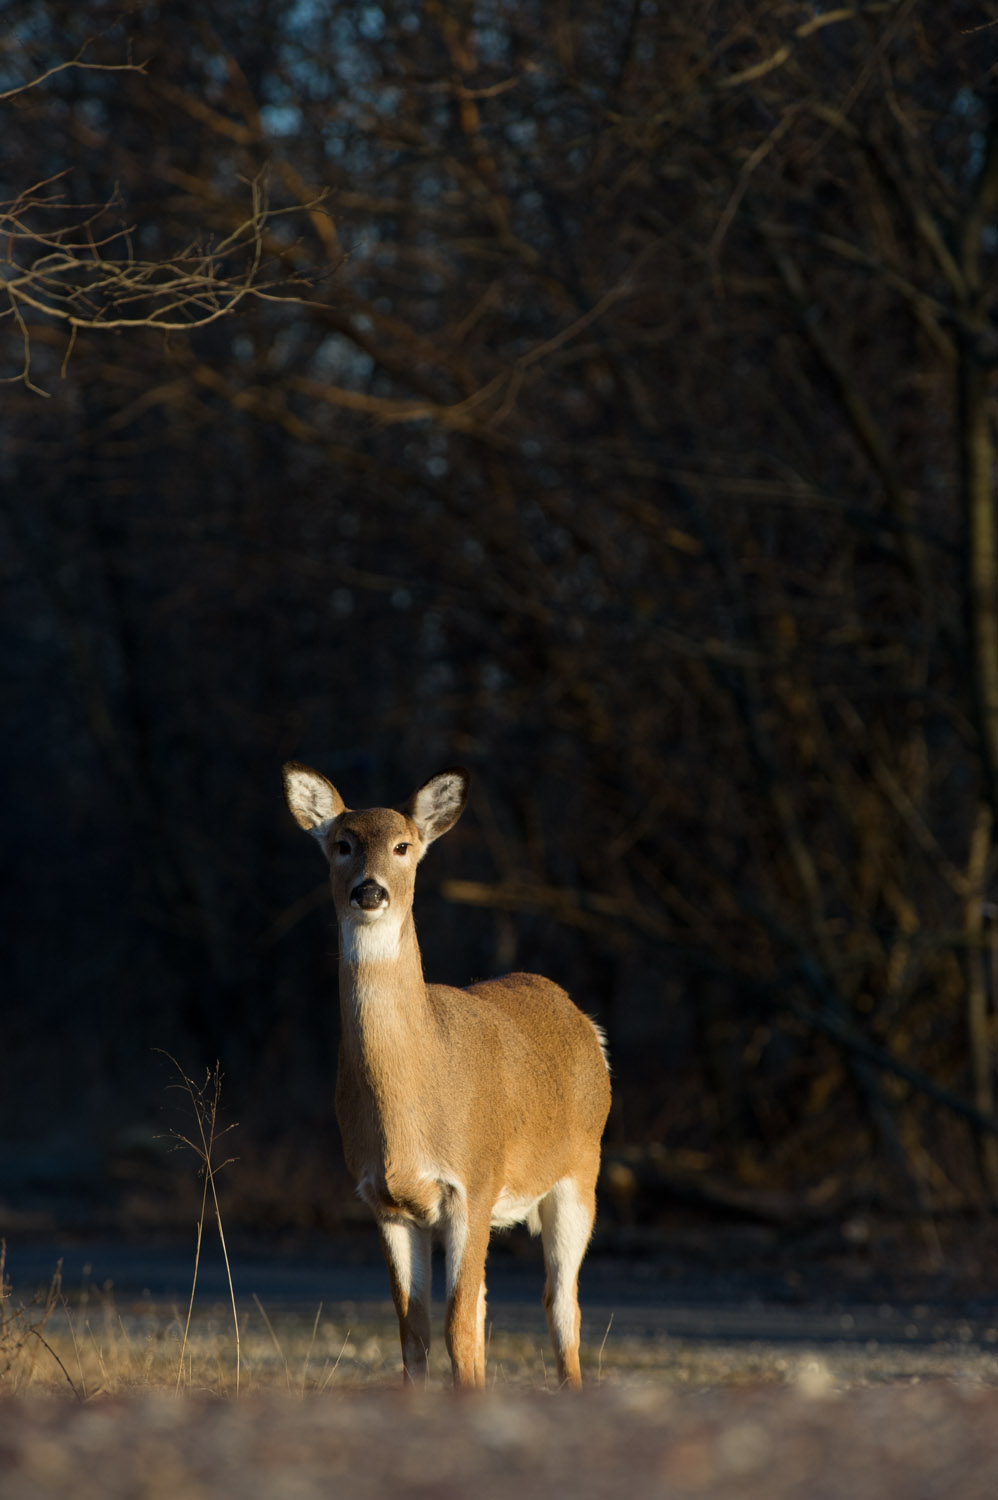 Every time I would press the shutter button this doe would look directly at me. Taken at Palmyra Cove Nature Park.